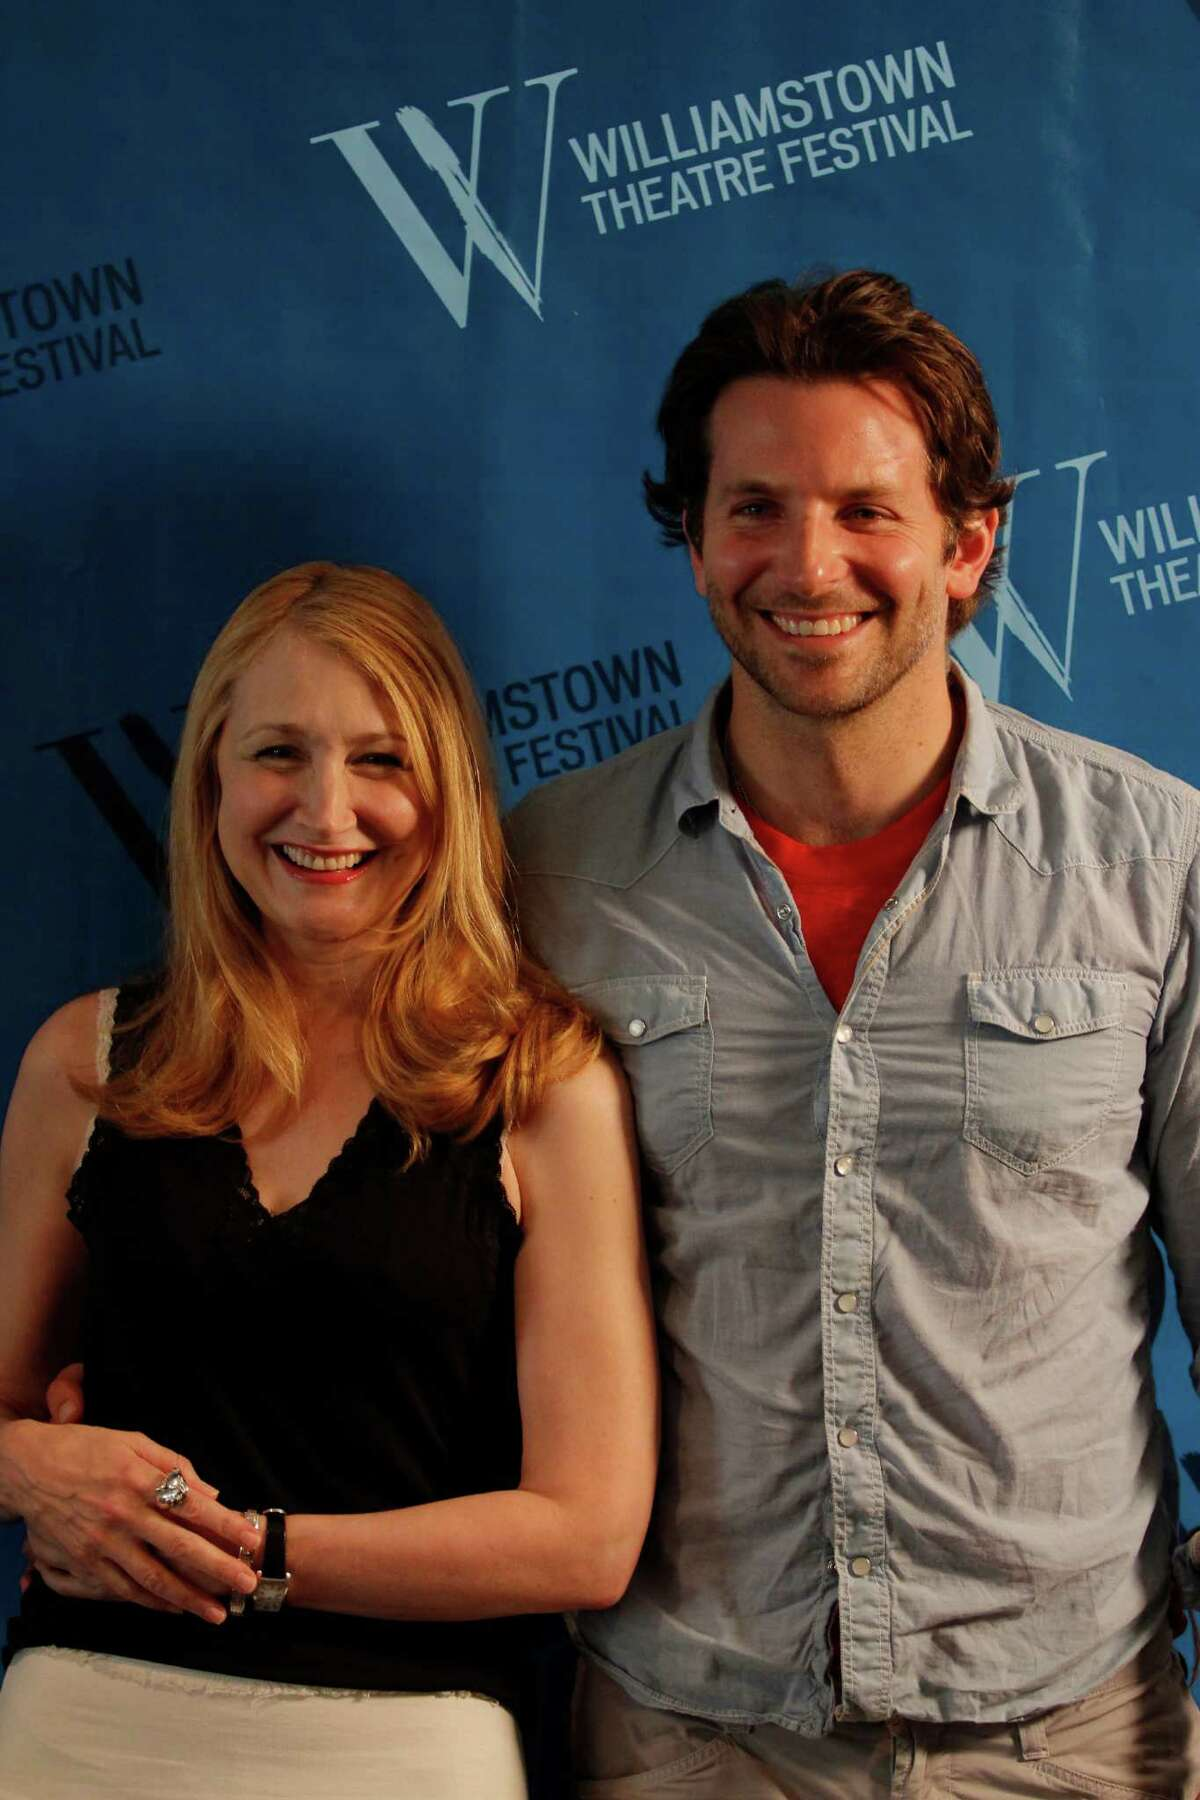 Actress Patricia Clarkson, left, and actor Bradley Cooper, right, pose for photos during a press availability for their roles in